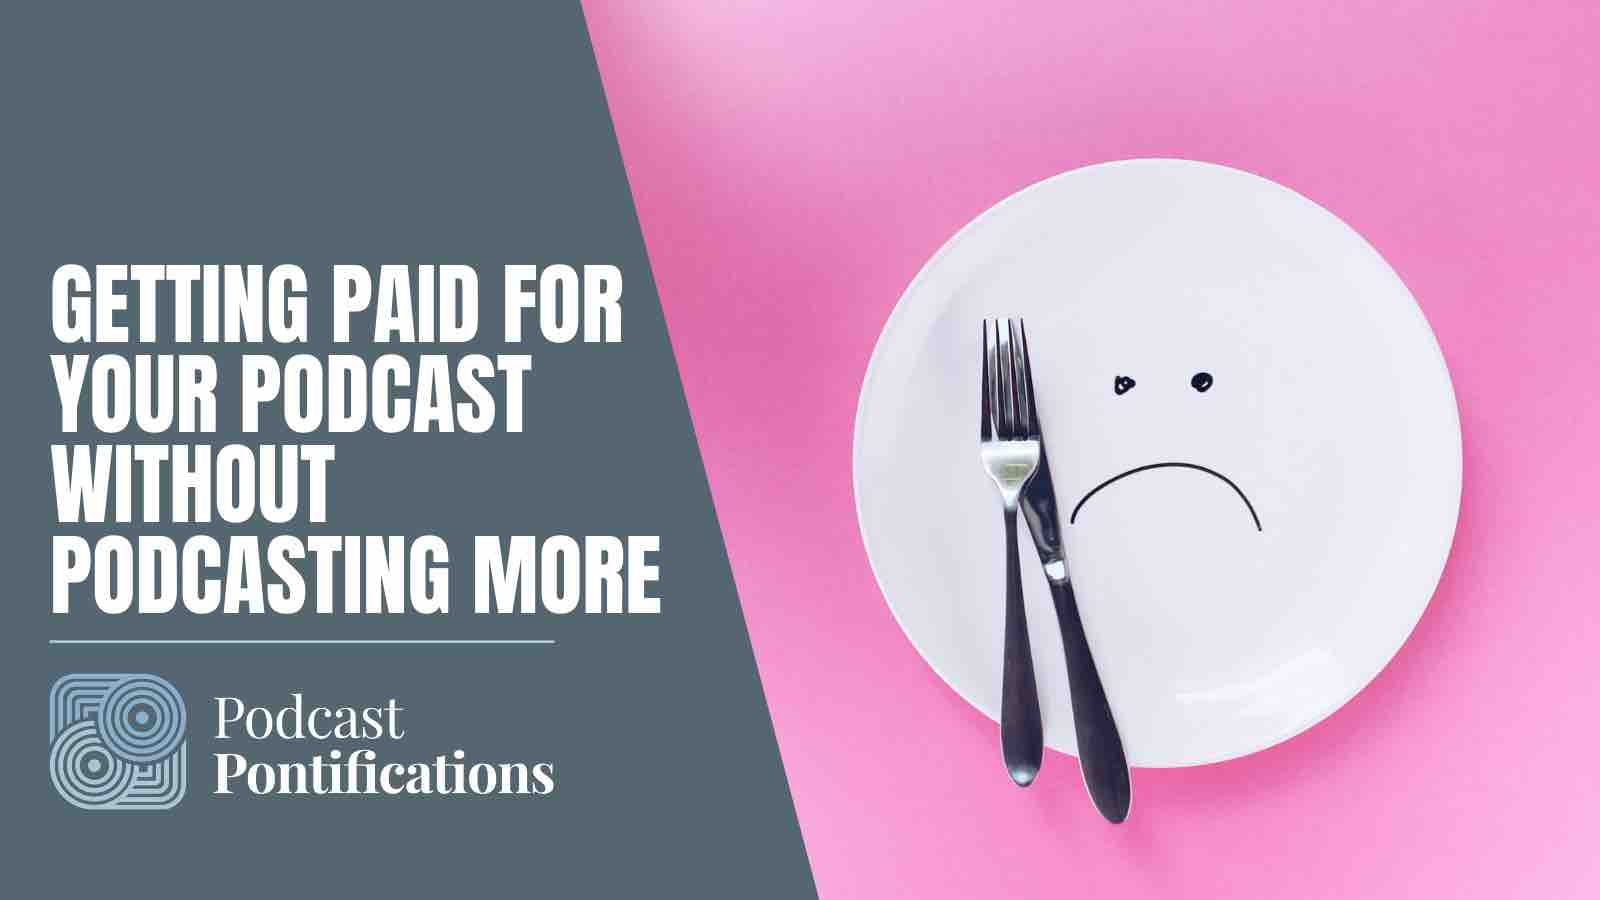 Getting Paid For Your Podcast Without Podcasting More